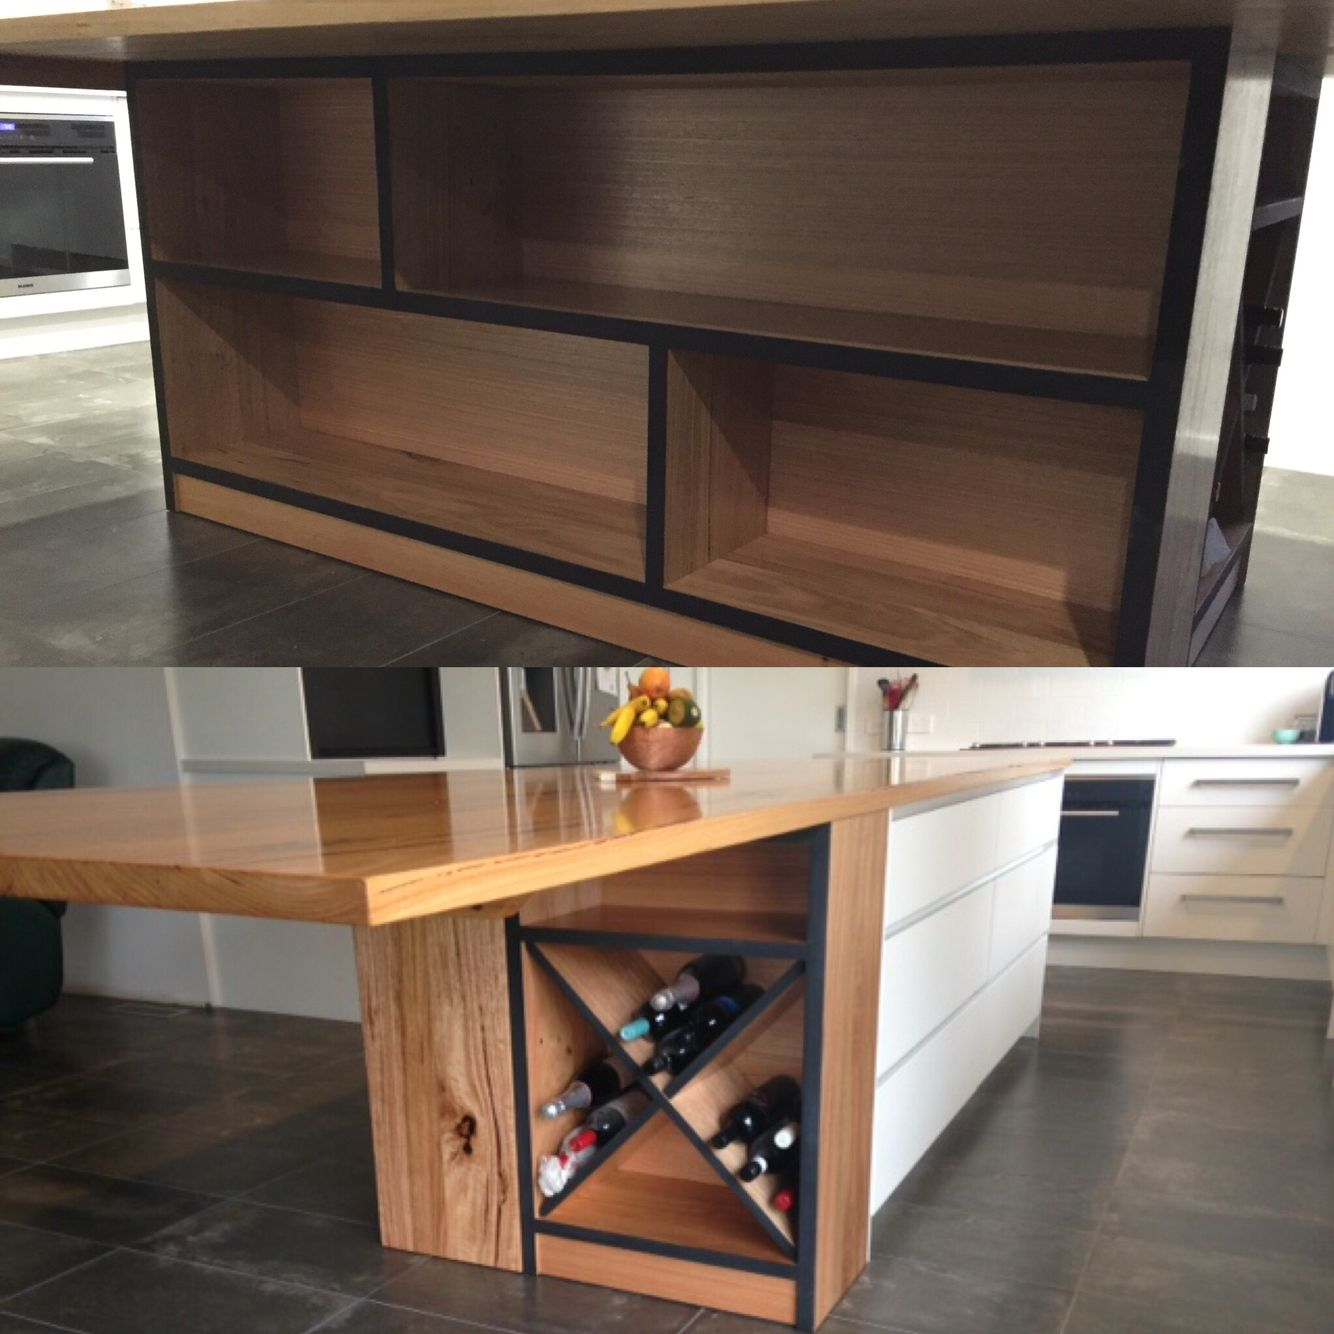 hanger console holder entrance cabinet rack tree cabinets storage bed cube table narrow and units bookshelf small dining bench coat end ikea seat entryway mudroom hallway furniture of shelves shoe hall